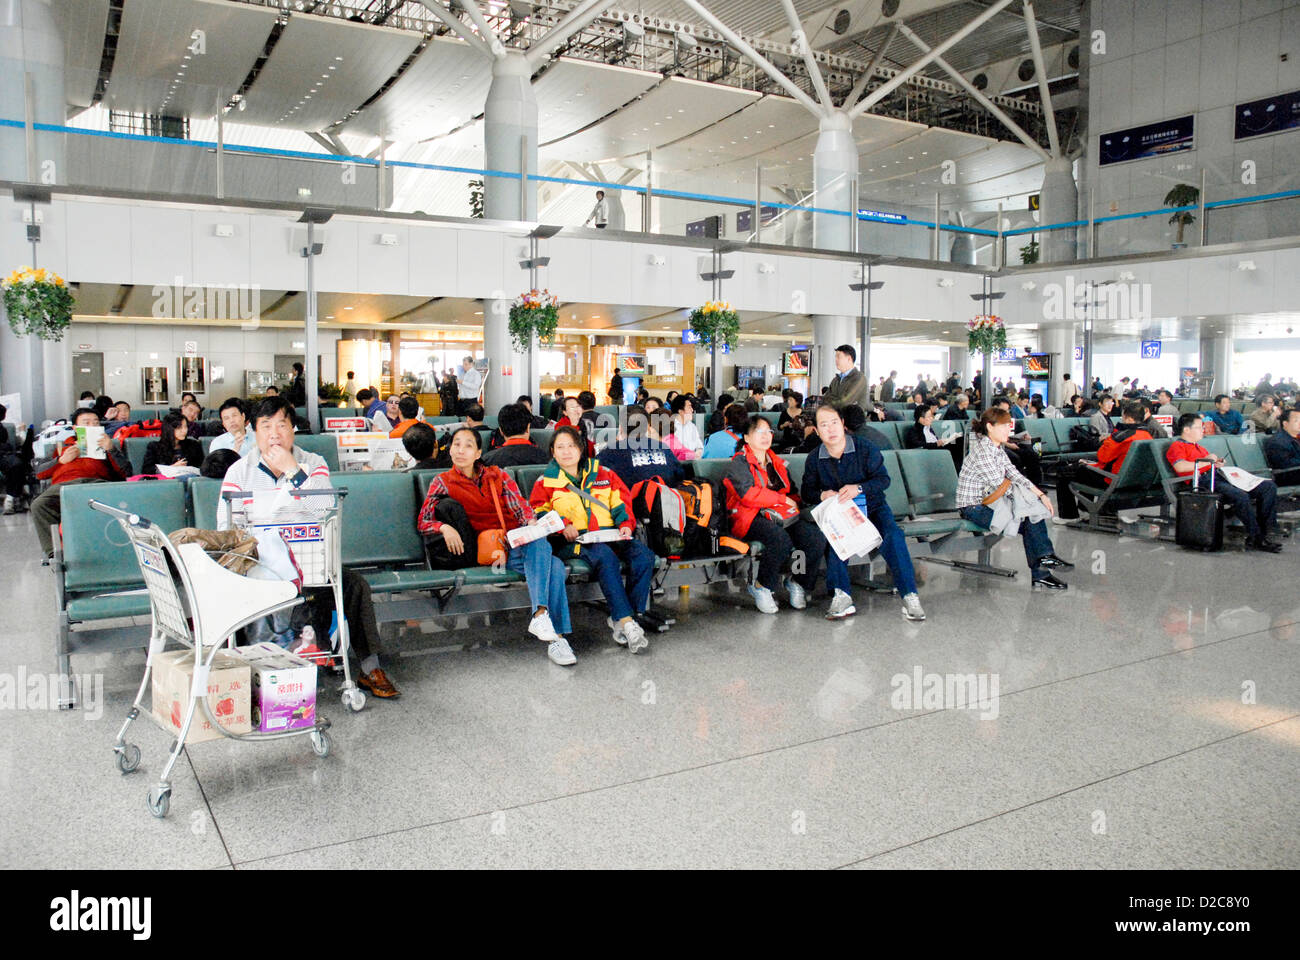 Beijing Capital Airport, China Stockbild